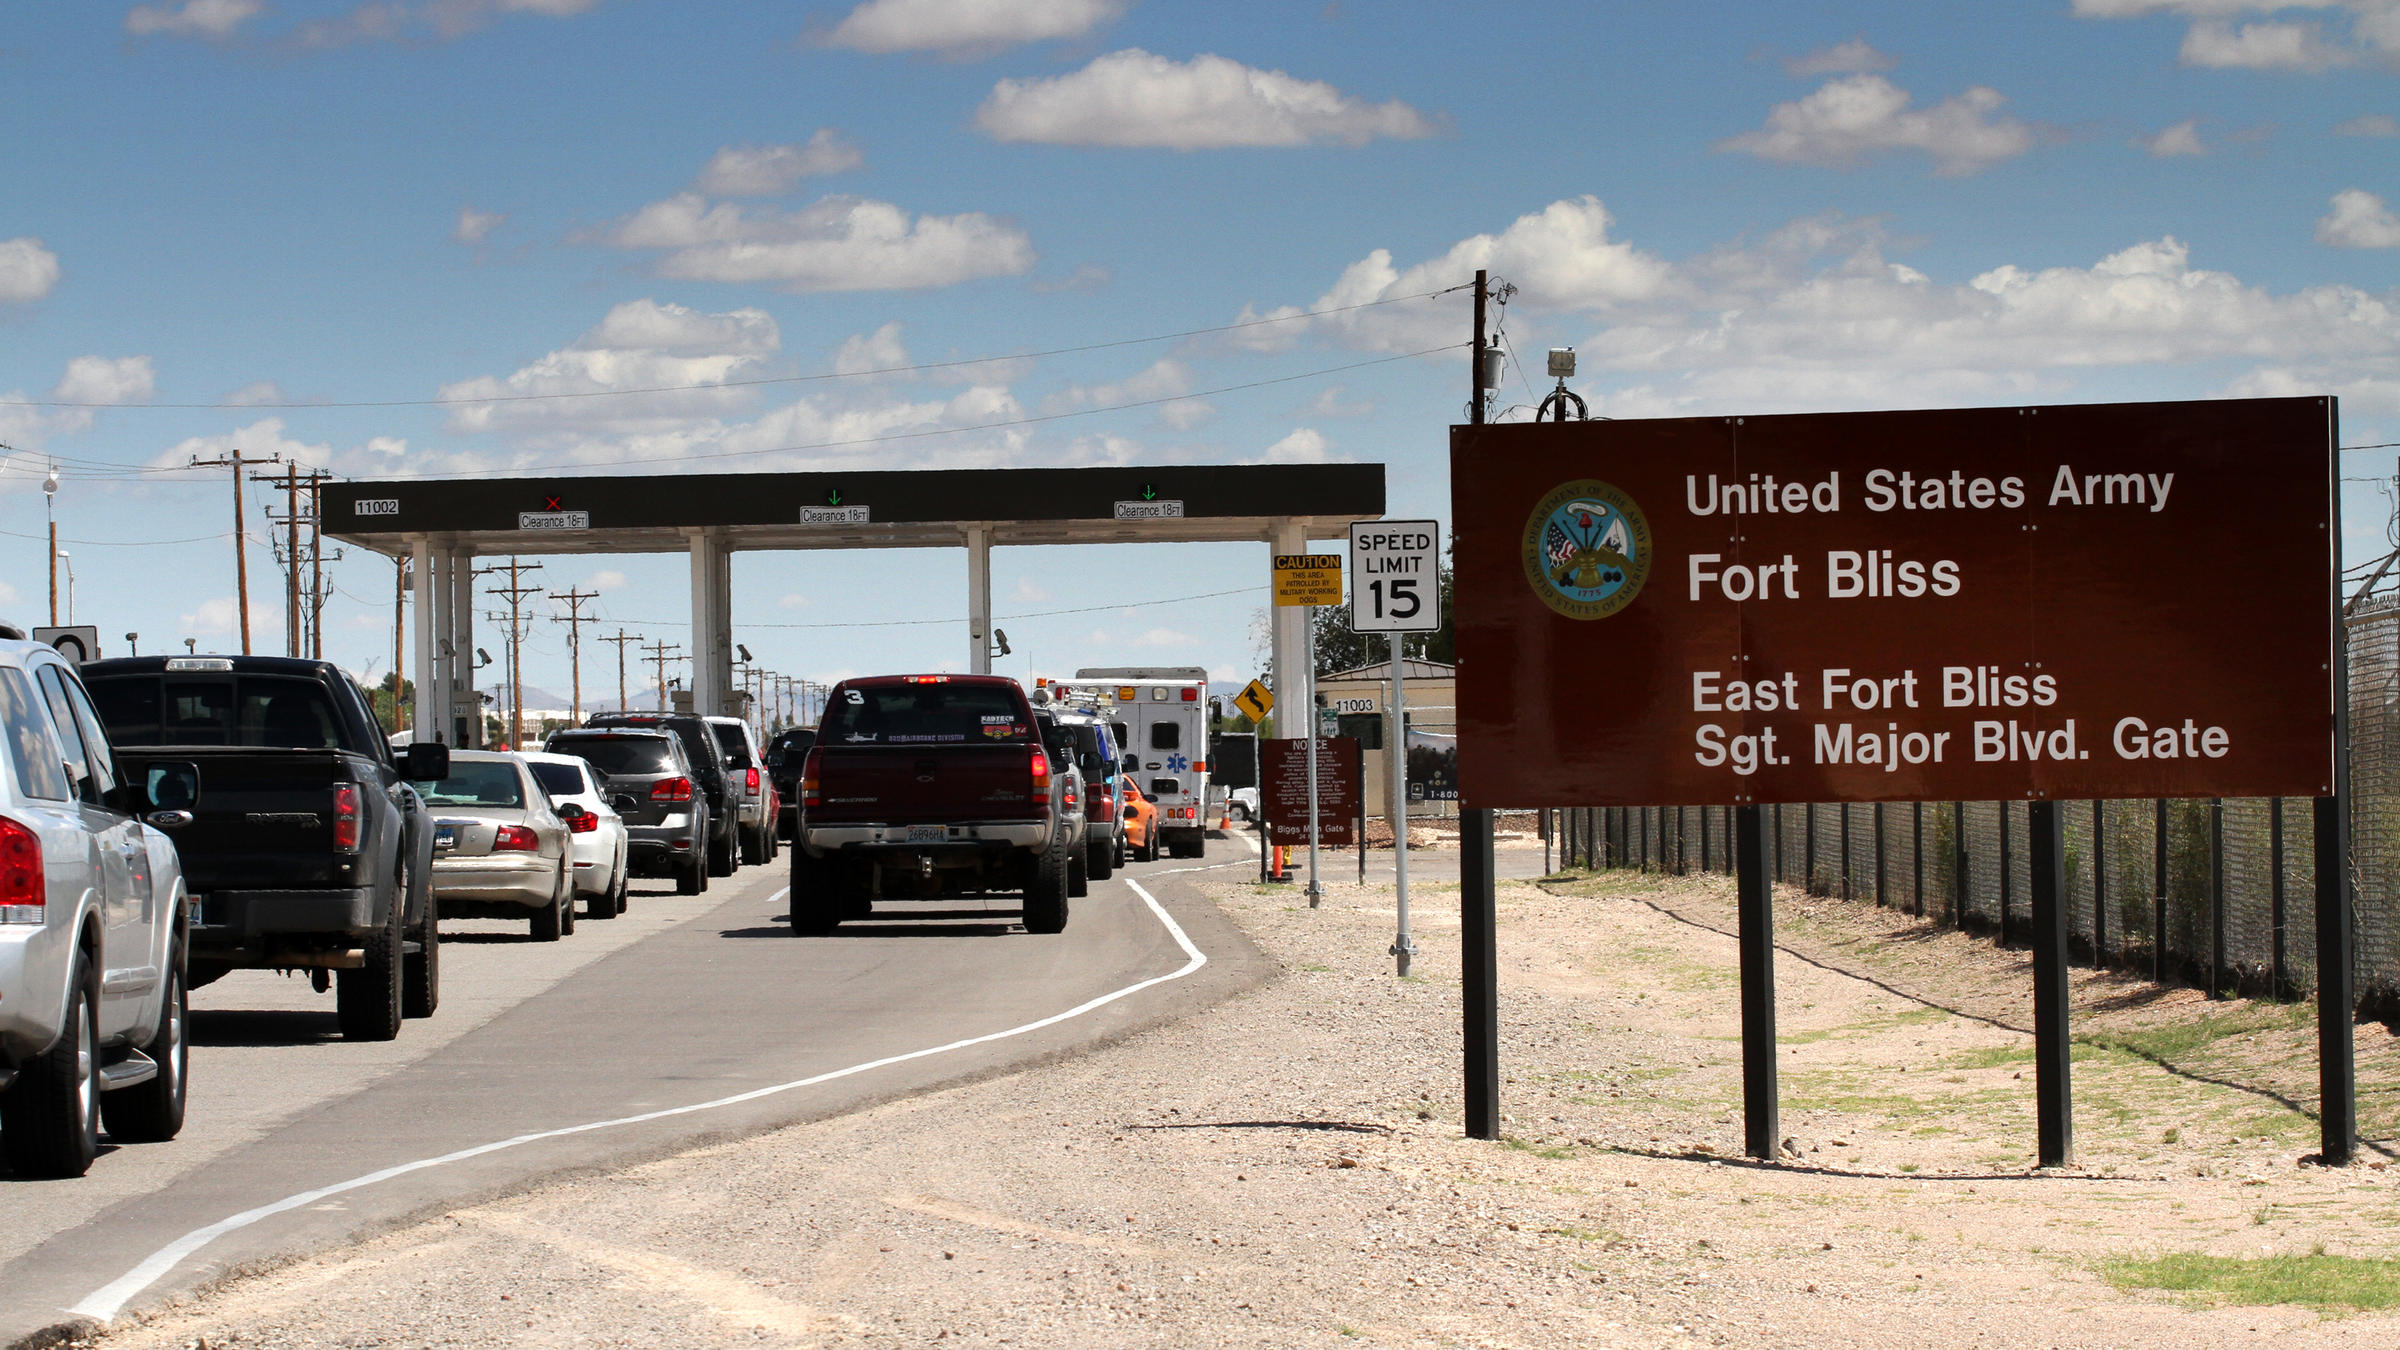 Cars wait to enter Fort Bliss in El Paso, Texas, in 2014. The